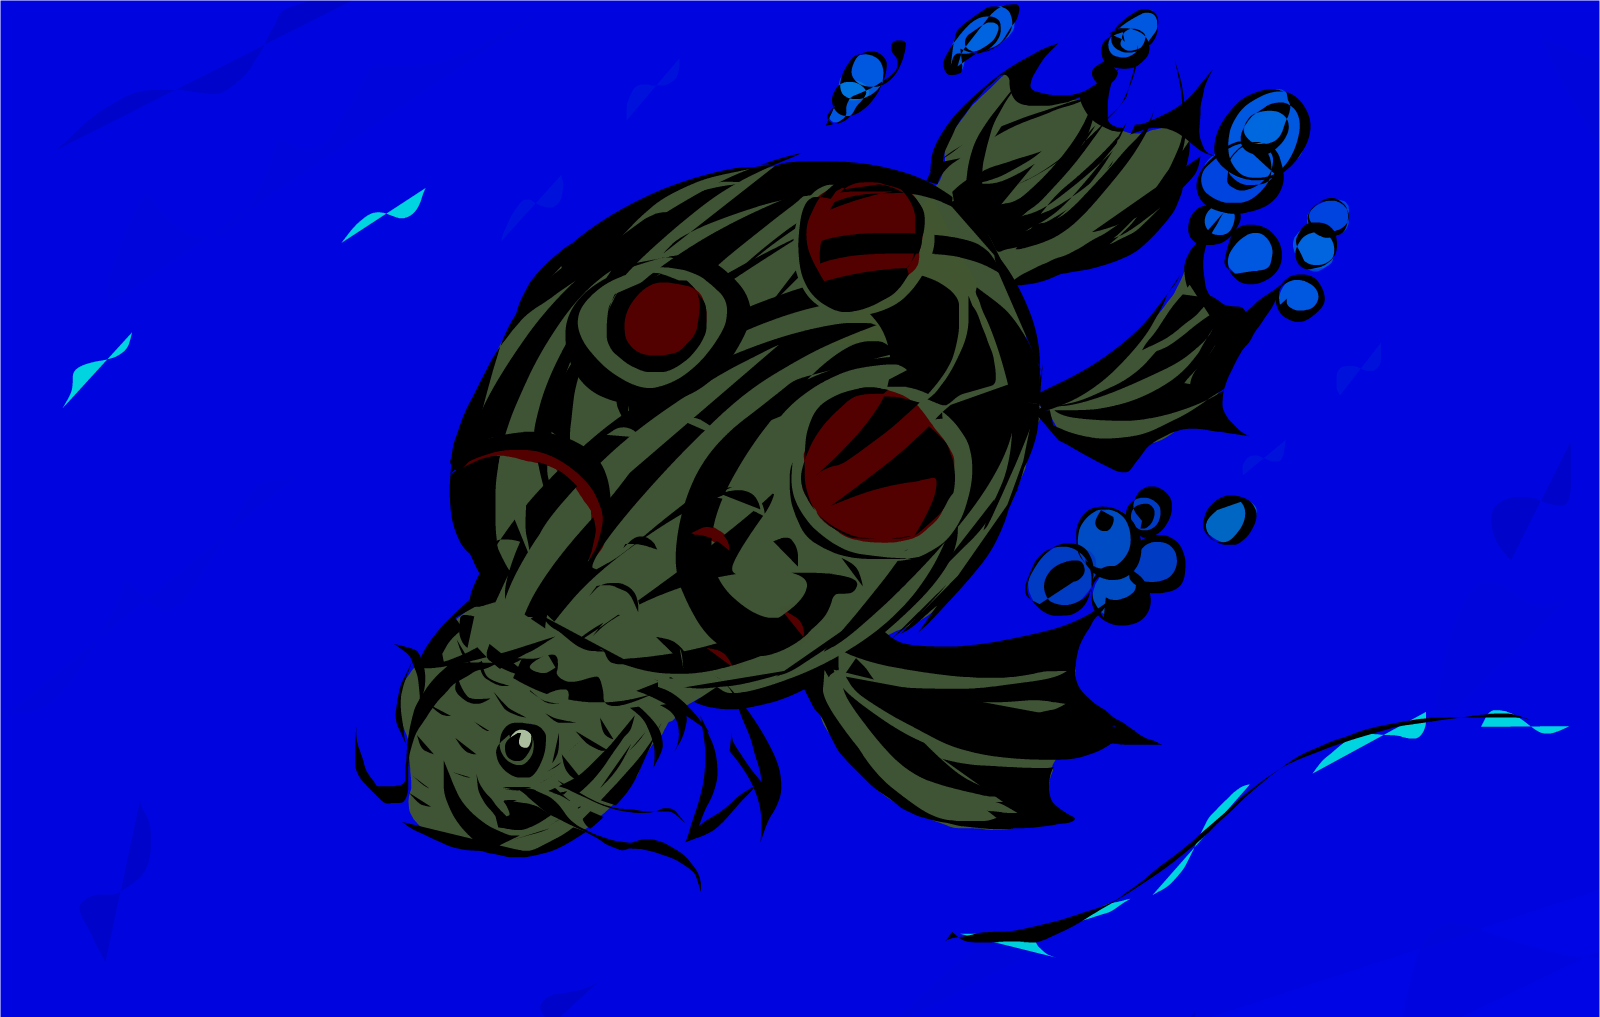 The return of fish turtle drawings sketchport for Turtle fish games